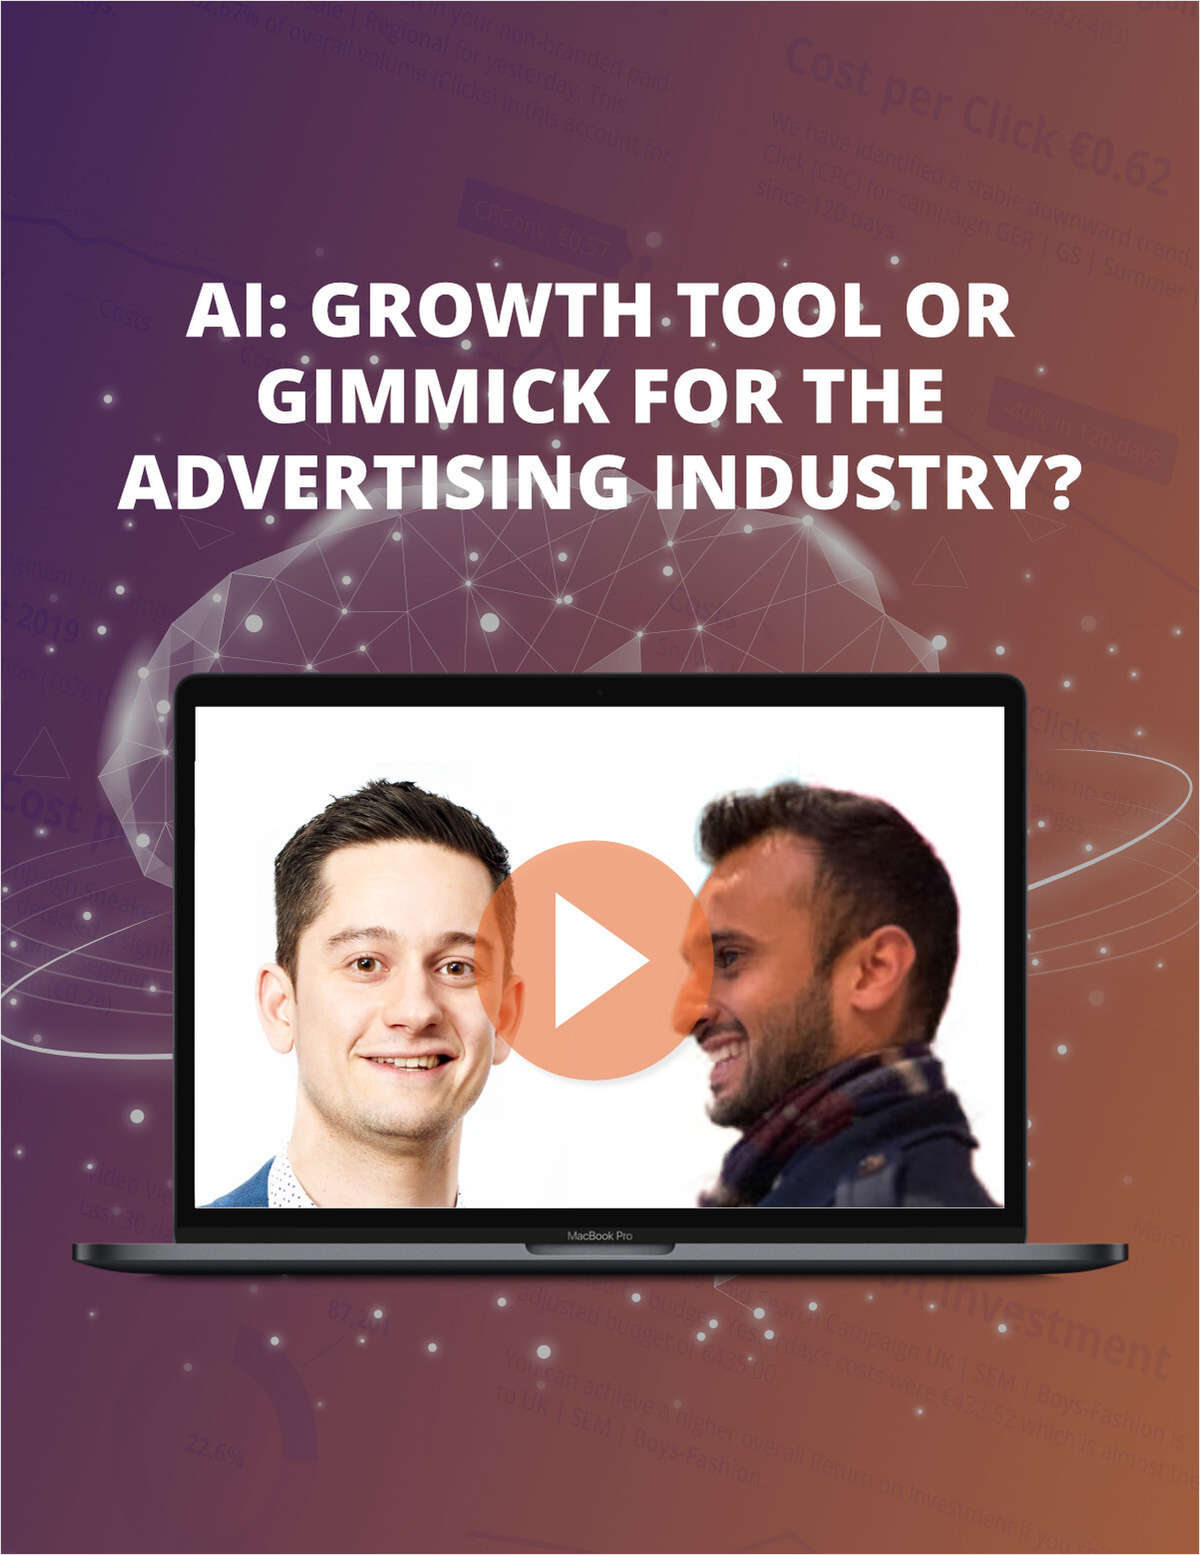 AI - GROWTH TOOL OR GIMMICK FOR THE ADVERTISING INDUSTRY?